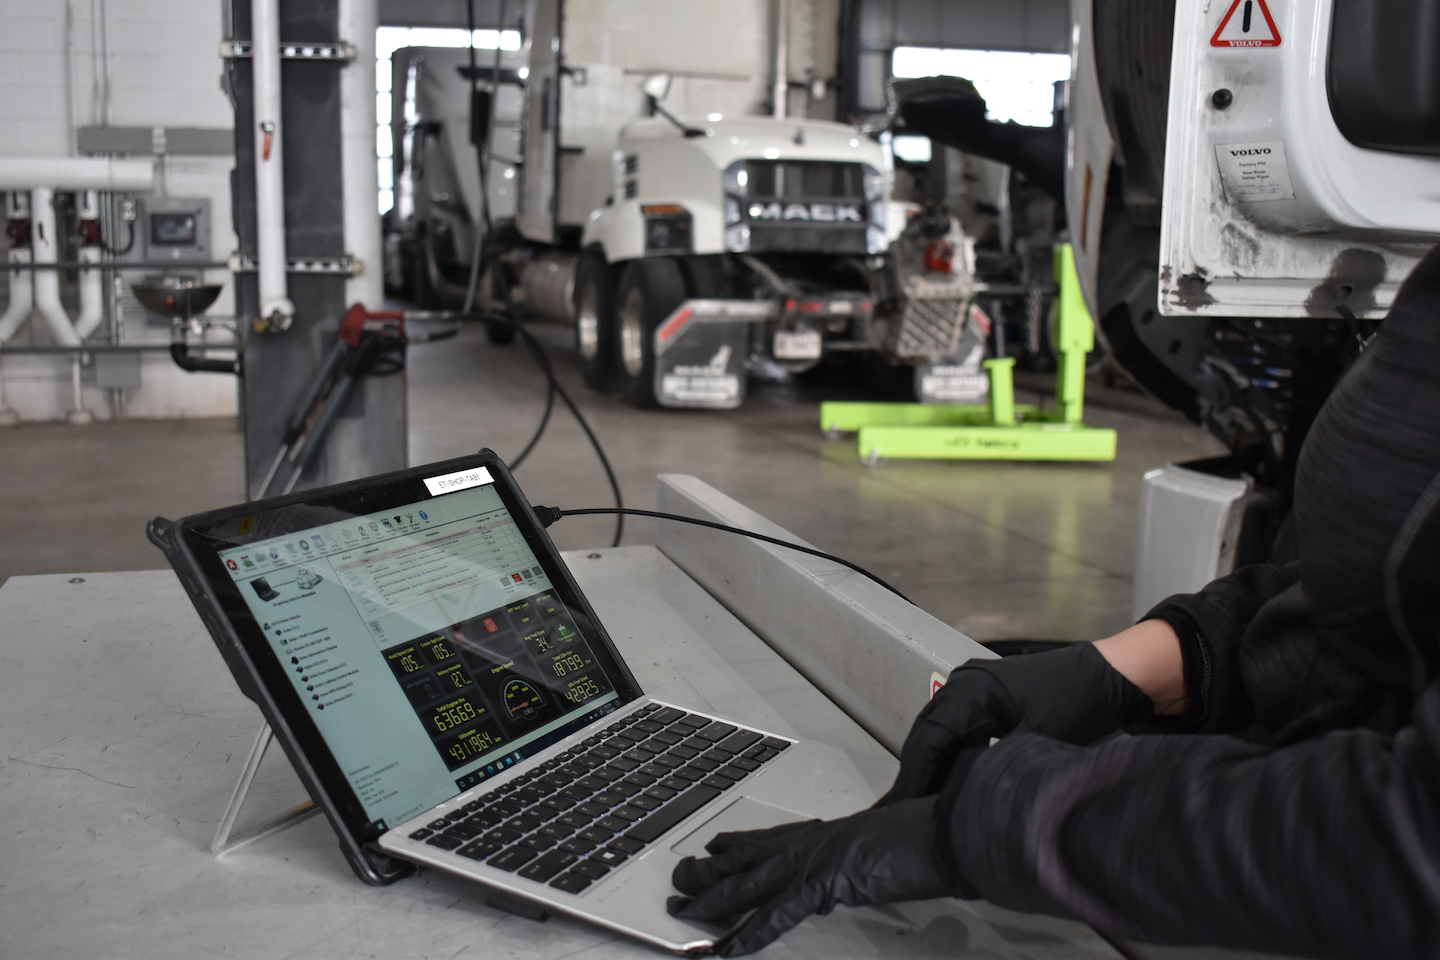 In early 2019, Vision expanded its use of SRM to build paperless service event management processes in ASIST, and soon afterward it implemented the application when it issued iPad tablets to 35 technicians in its Etobicoke, Ontario shop.